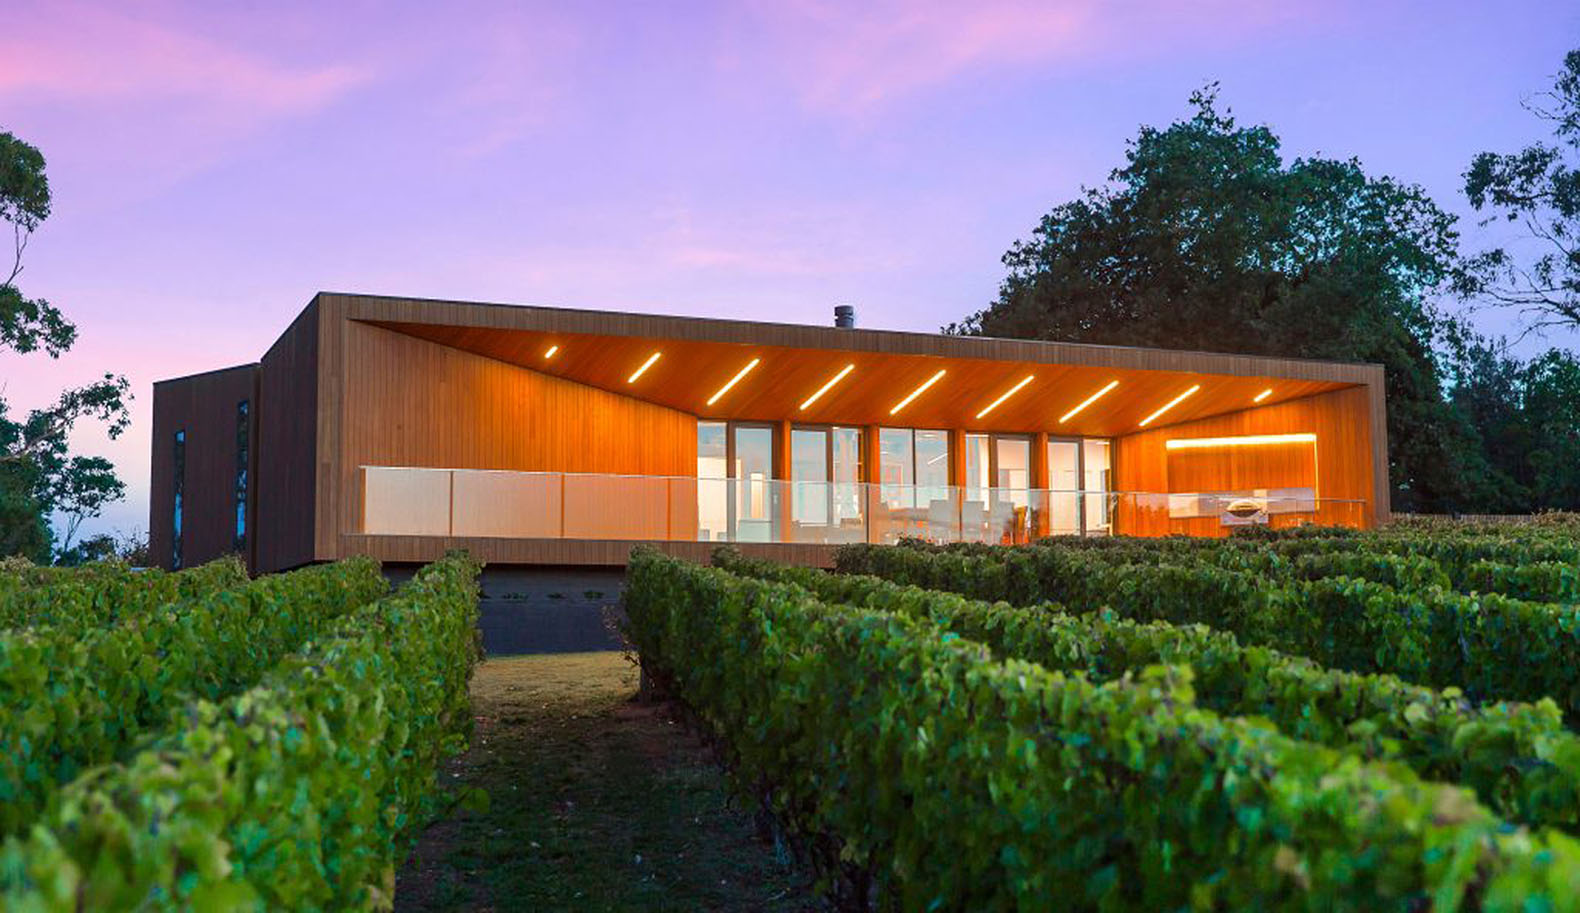 Rammed earth inhabitat green design innovation architecture green building - The rammed earth hacienda ...